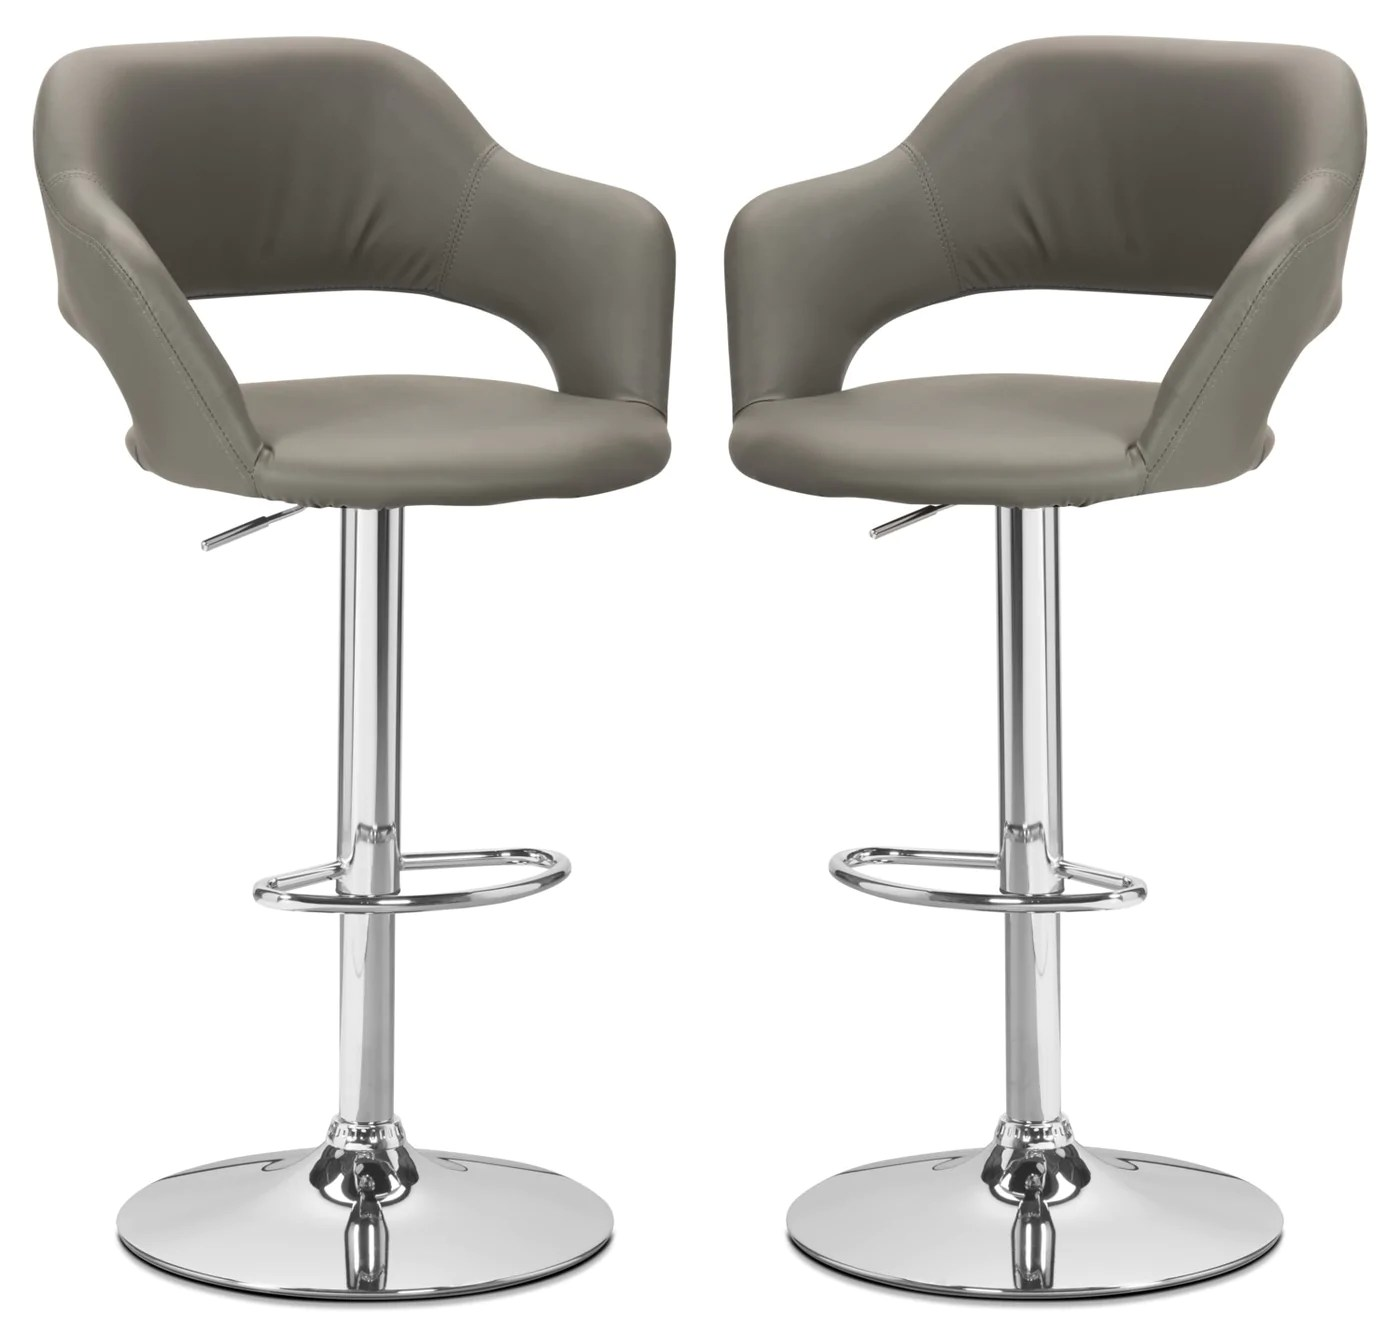 Accent Rex Meubles Monarch Hydraulic Contemporary Bar Stool Set Of 2 Grey